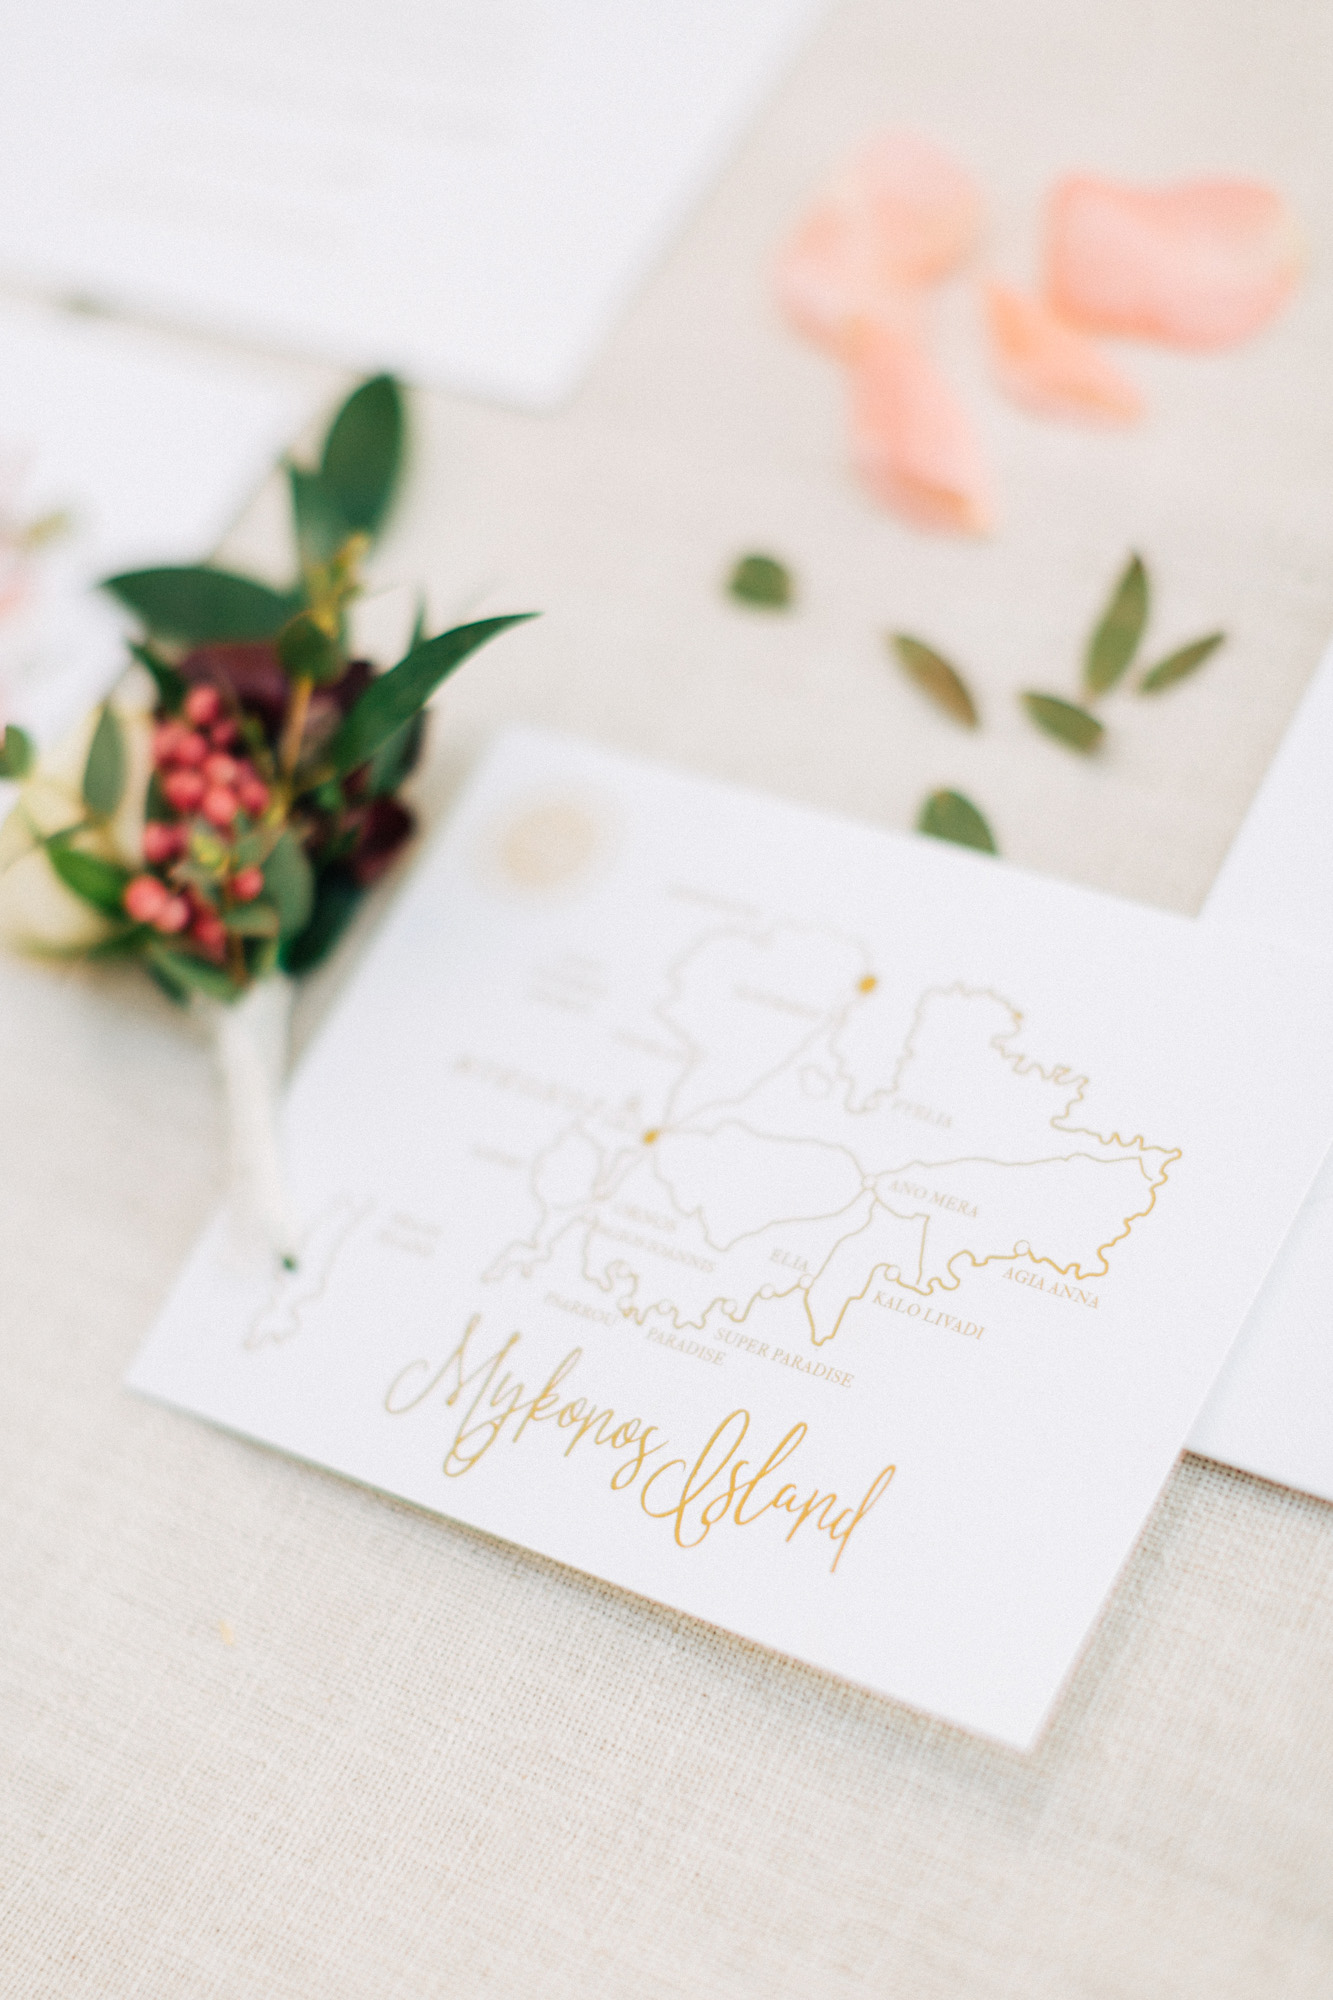 Destination wedding stationery set for Mykonos island wedding. Wedding invitation and details.